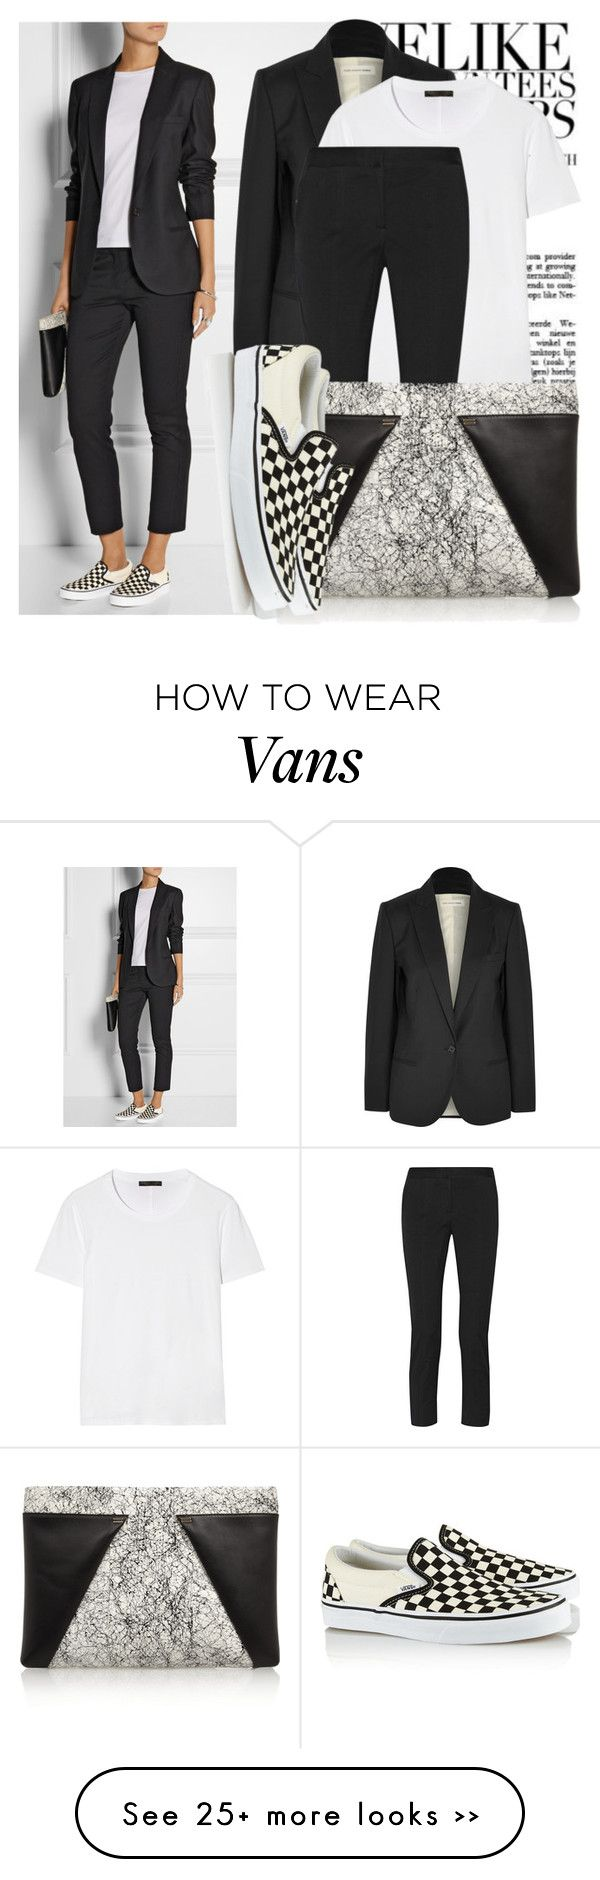 """VANS Checked canvas slip-on sneakers"" by martso on Polyvore"